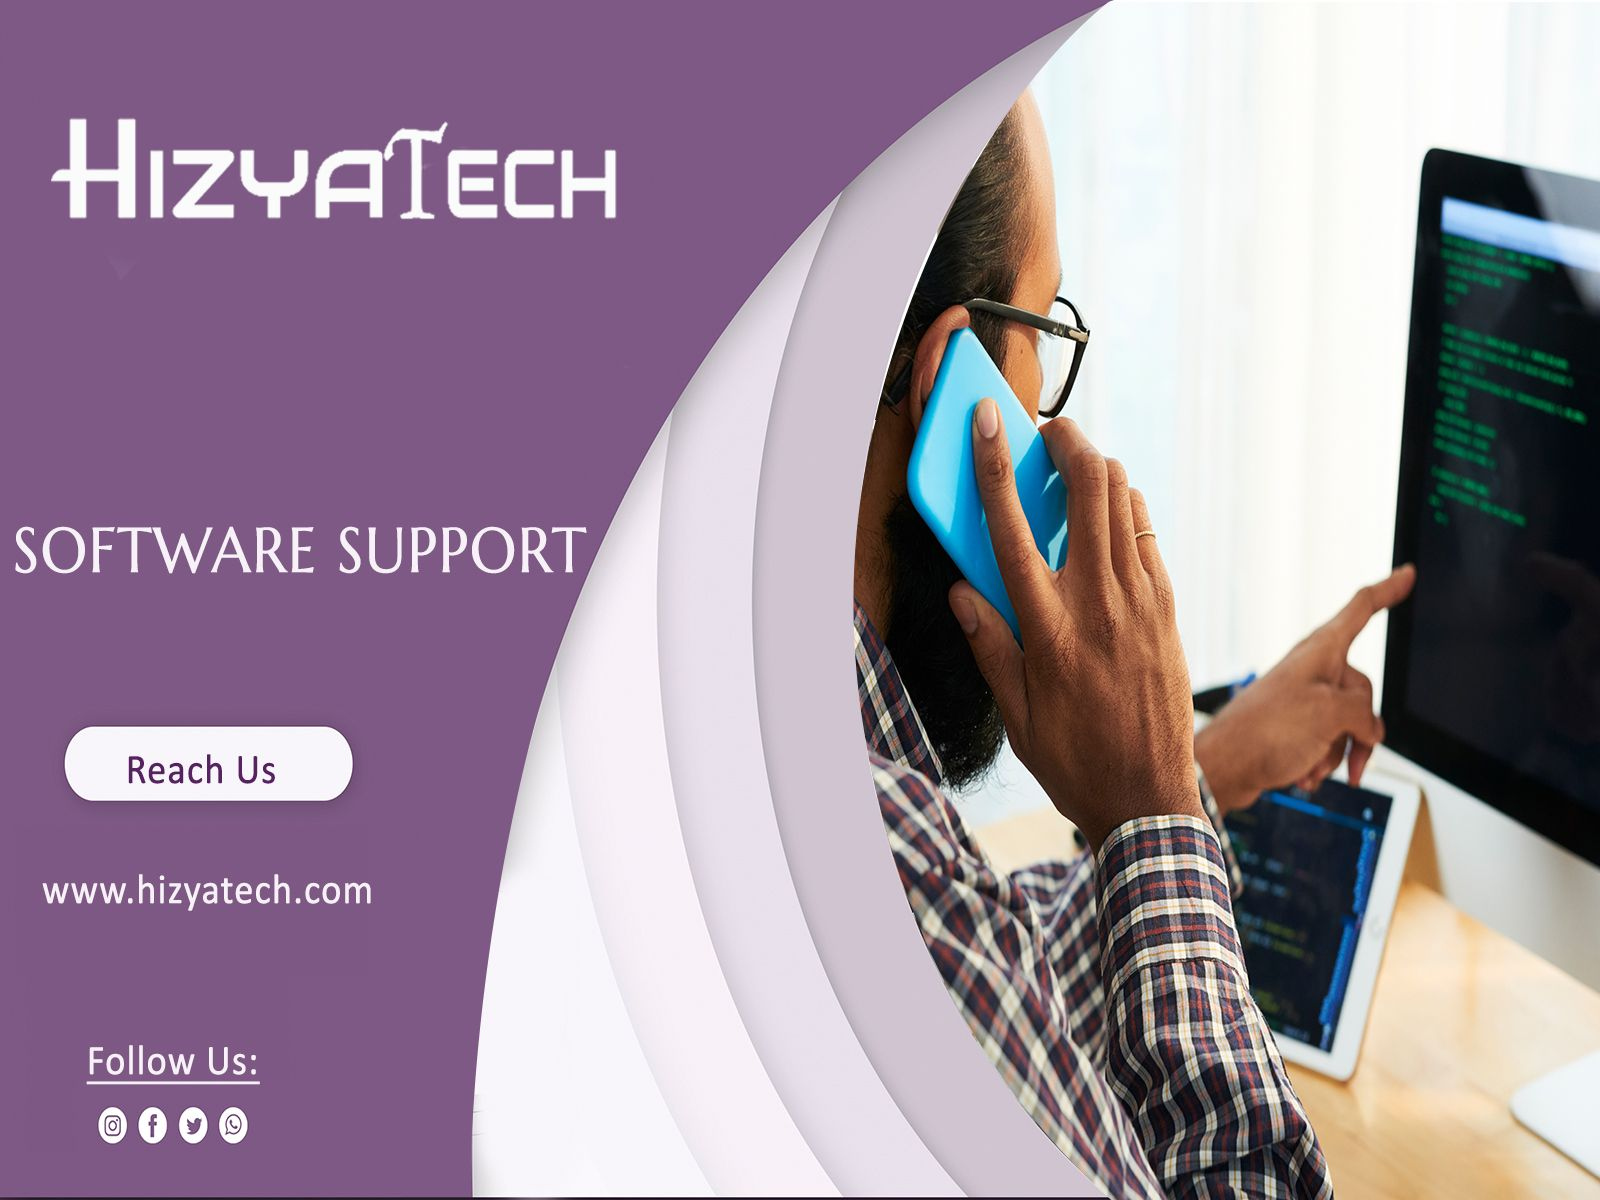 Hizyatech Provides Software Solutions And Technical Services That Will Help Businesses On Innovative Systems And Applications To Help Focus On T In 2020 Software Support